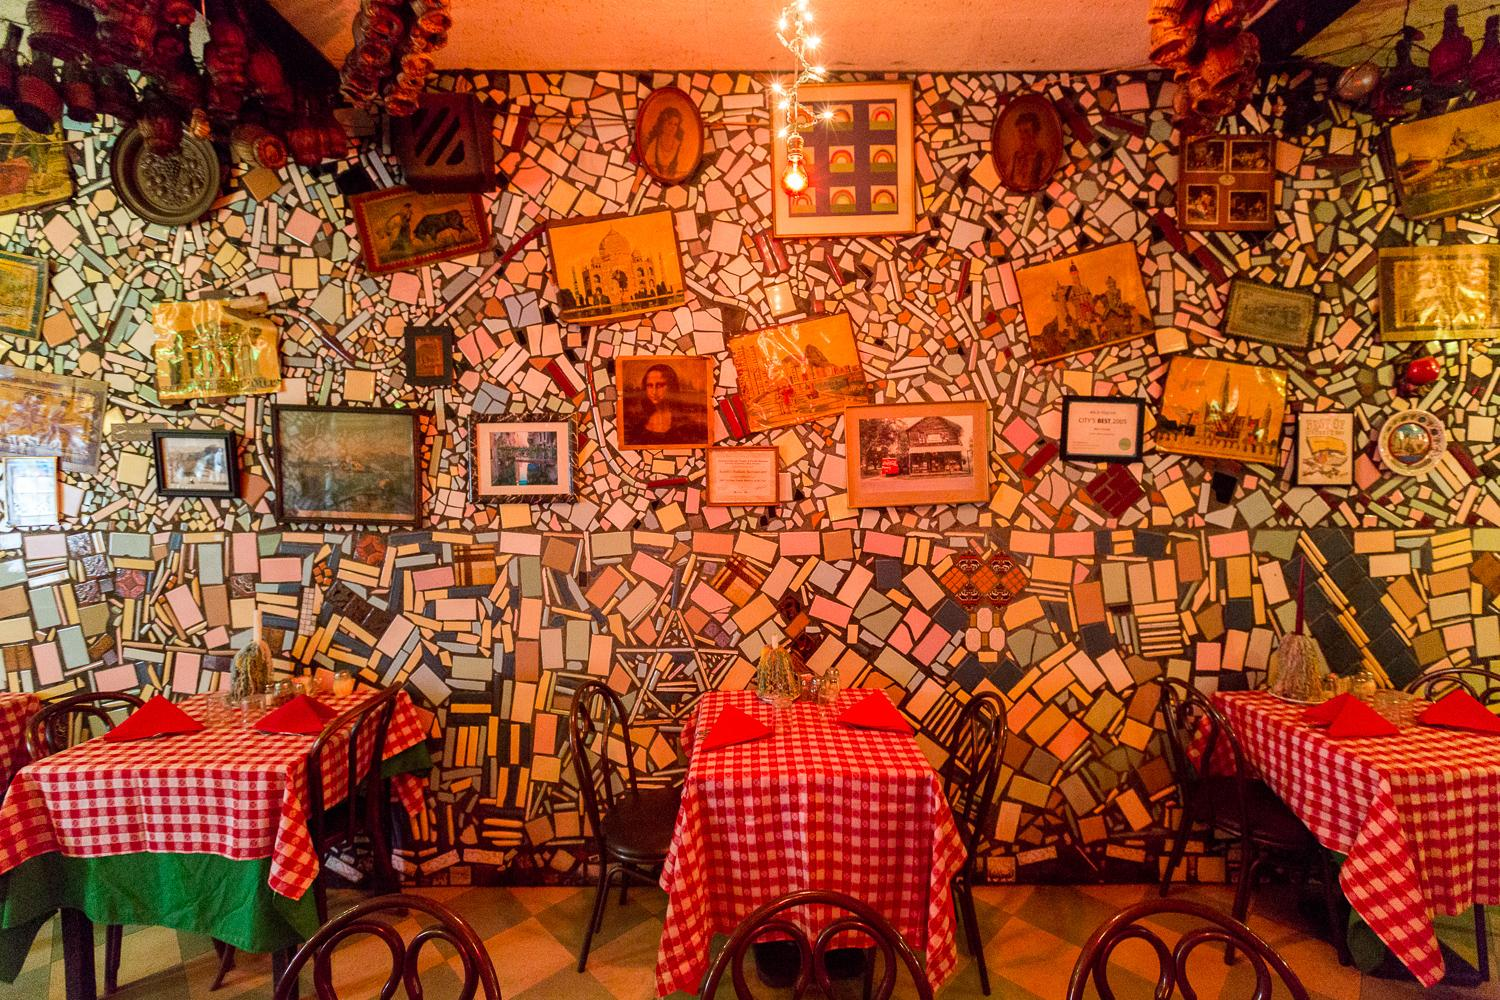 Scotti's Italian Restaurant, one of the oldest eateries in Cincinnati, has been combining traditional Italian flavor and classic Cincy flare for over 100 years. / Image: Daniel Smyth Photography